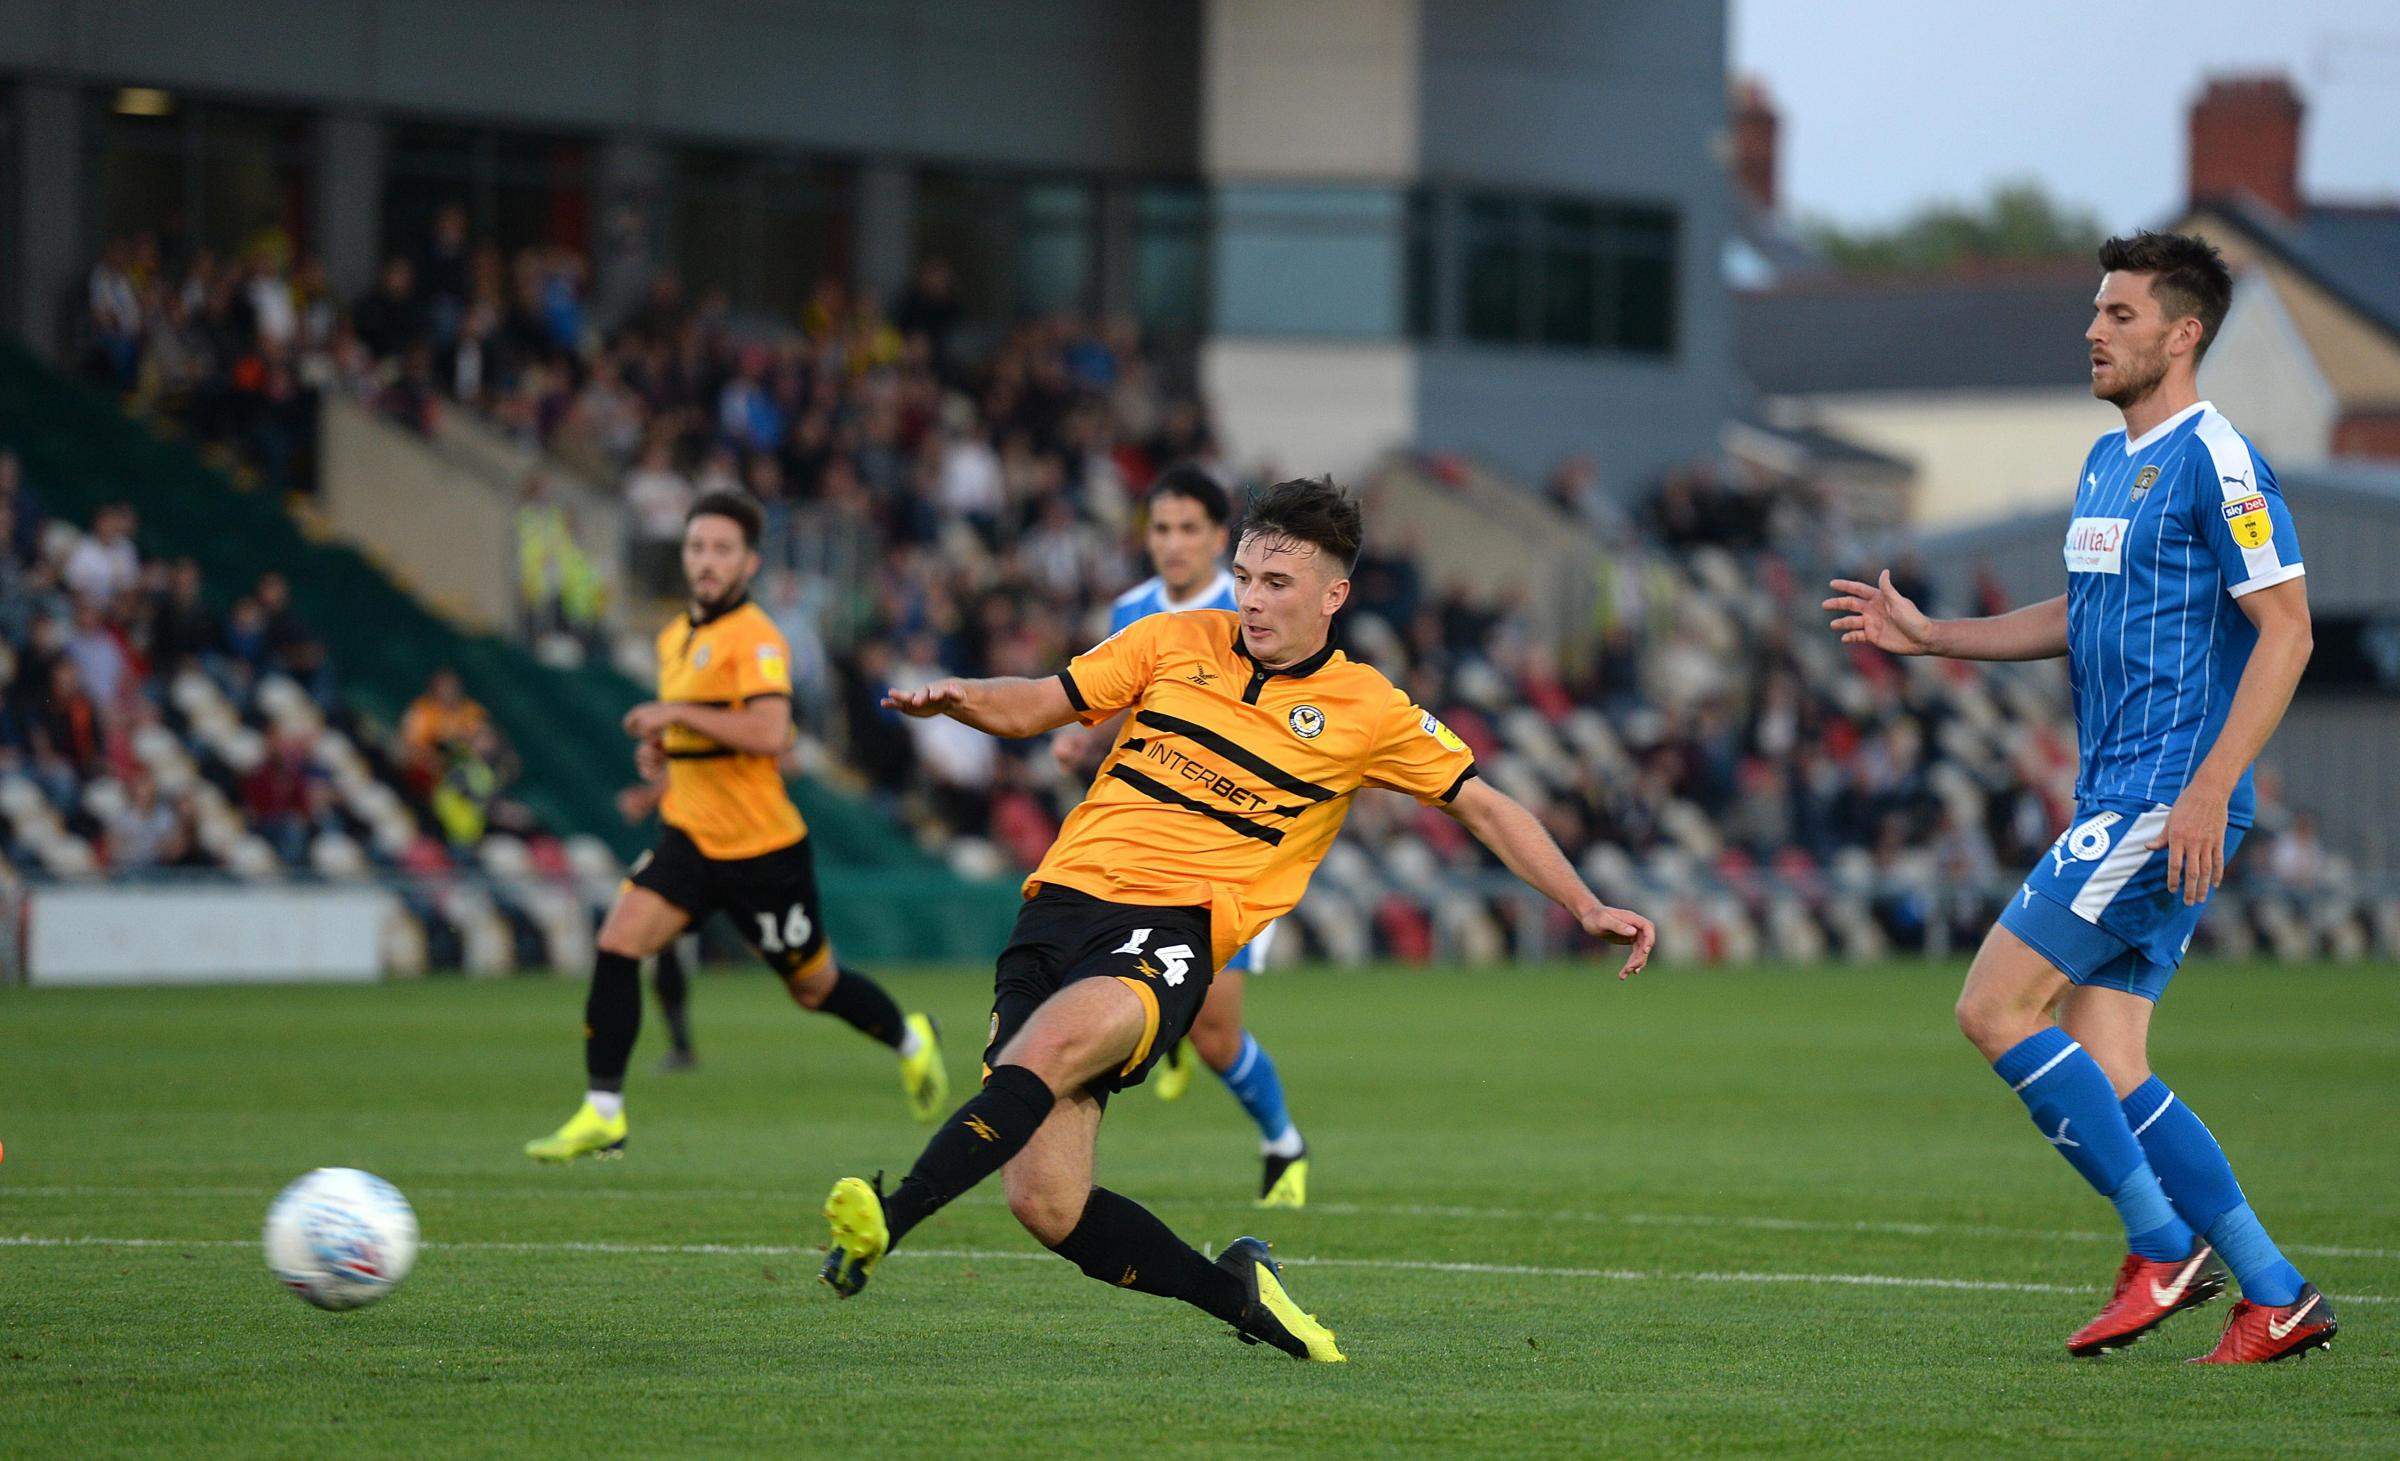 GOAL: Newport County loan star Mark Harris hopes to score at Rodney Parade for Wales under-21s next week